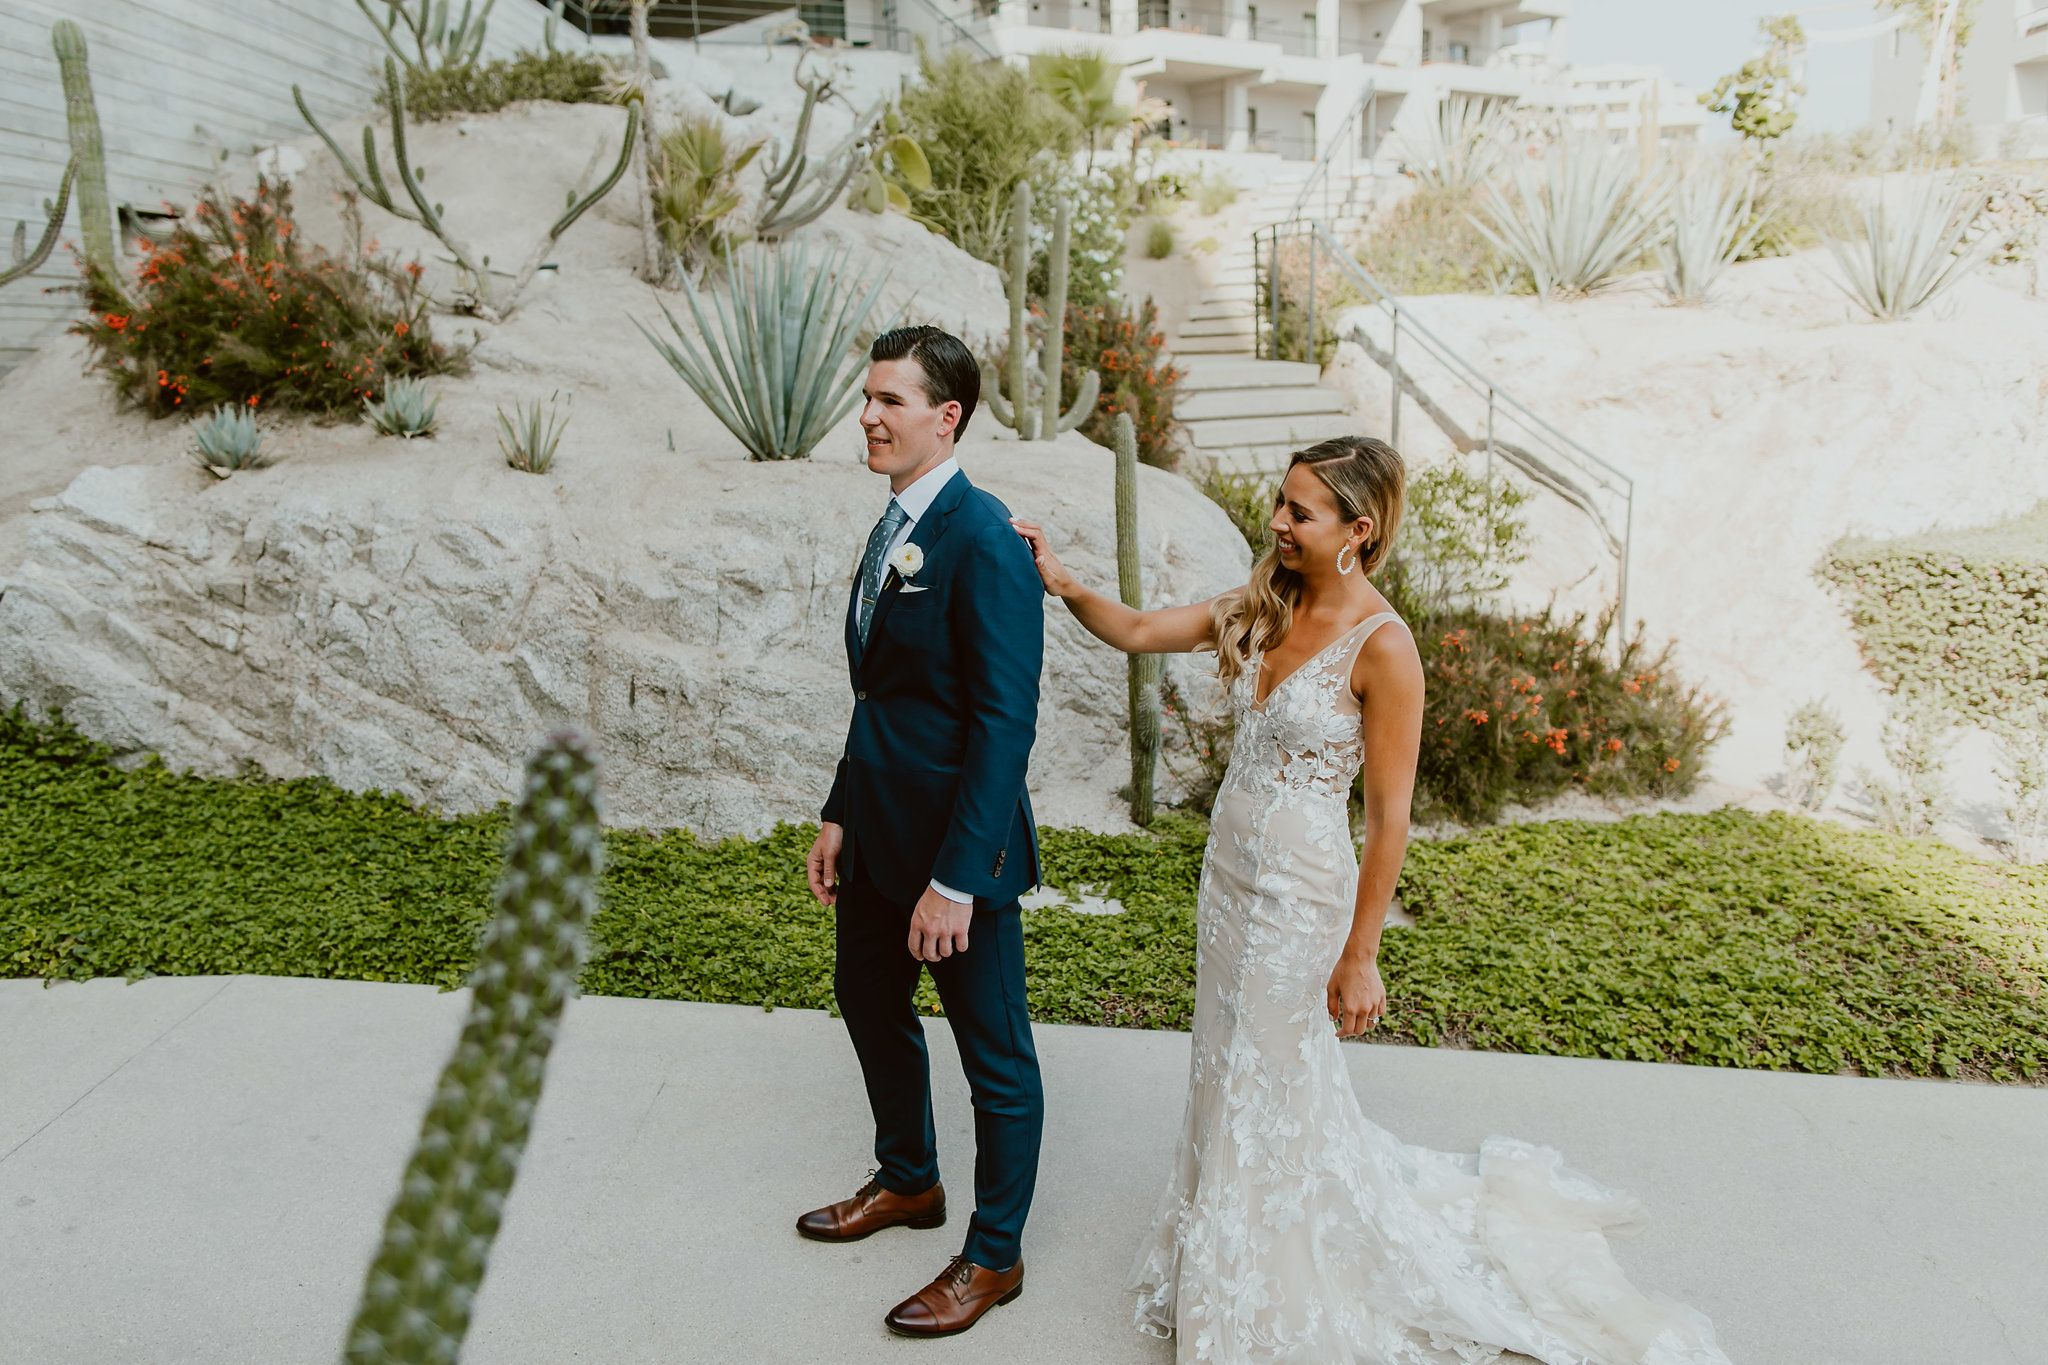 Bride and Groom doing First Look at Wedding Venue in Cabo San Lucas Mexico The Cape by Thompson Hotels